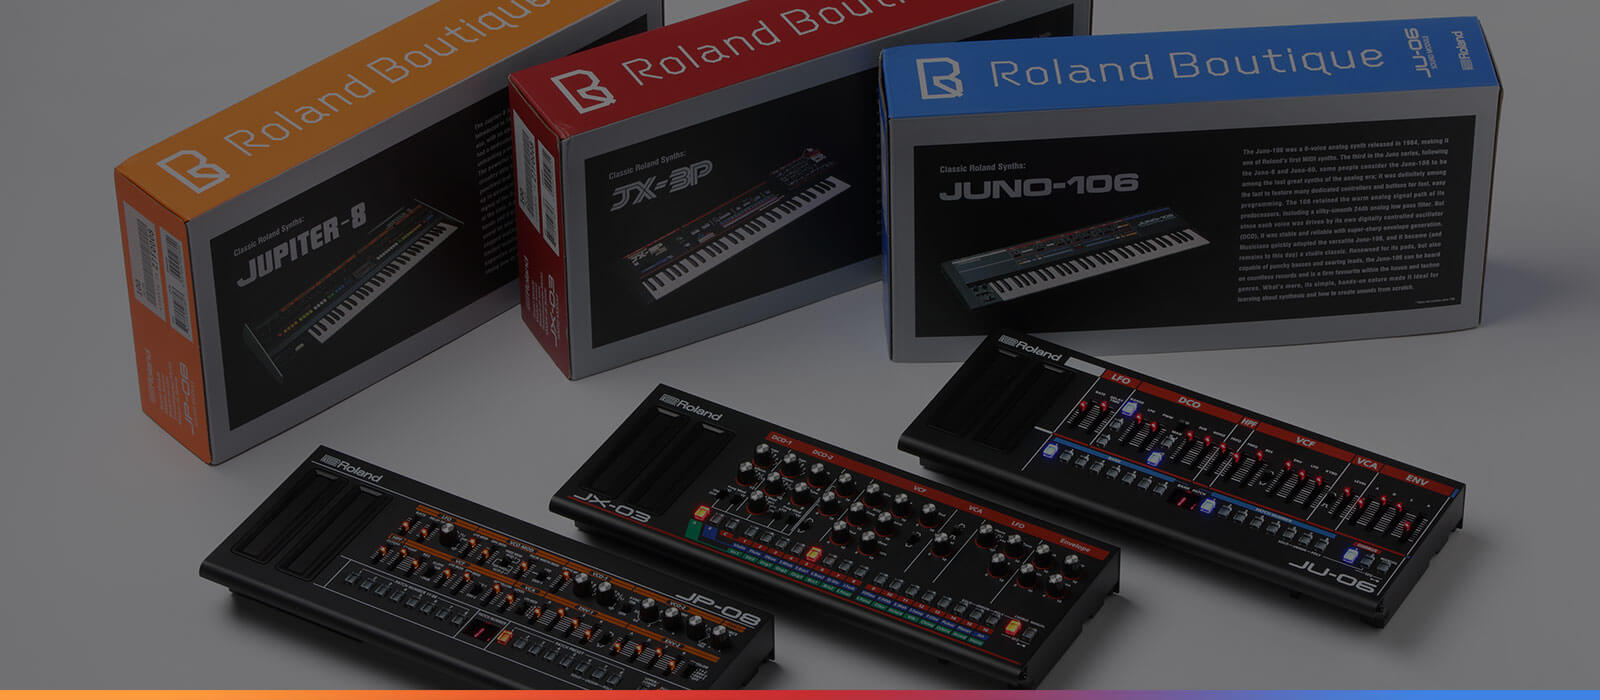 The Roland Boutique Series Story